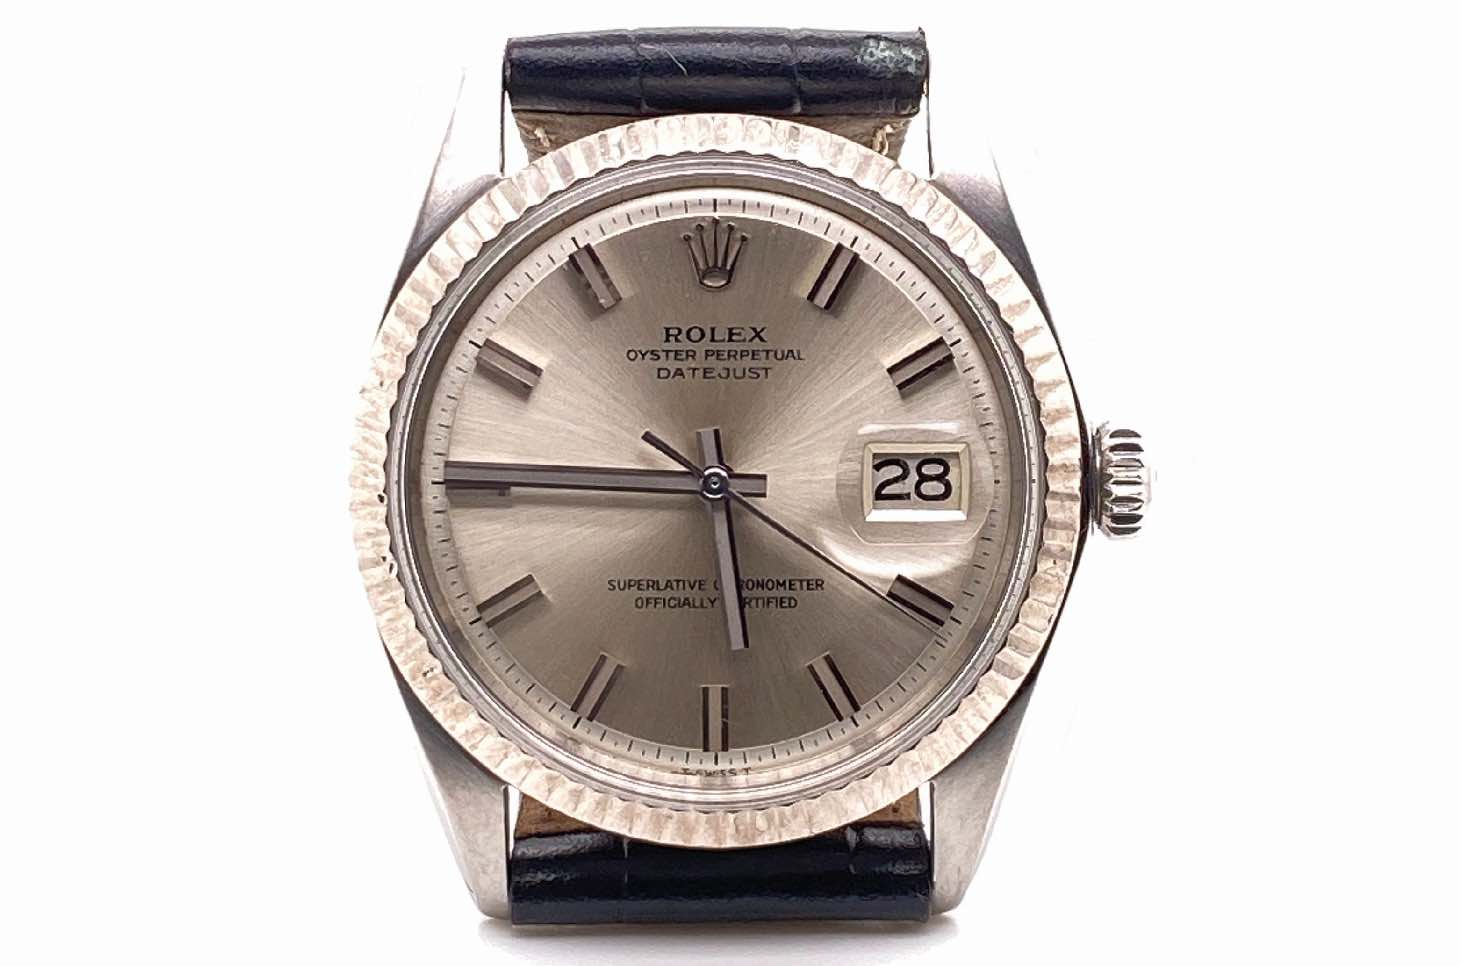 Montre Rolex vintage Oyster perpetual